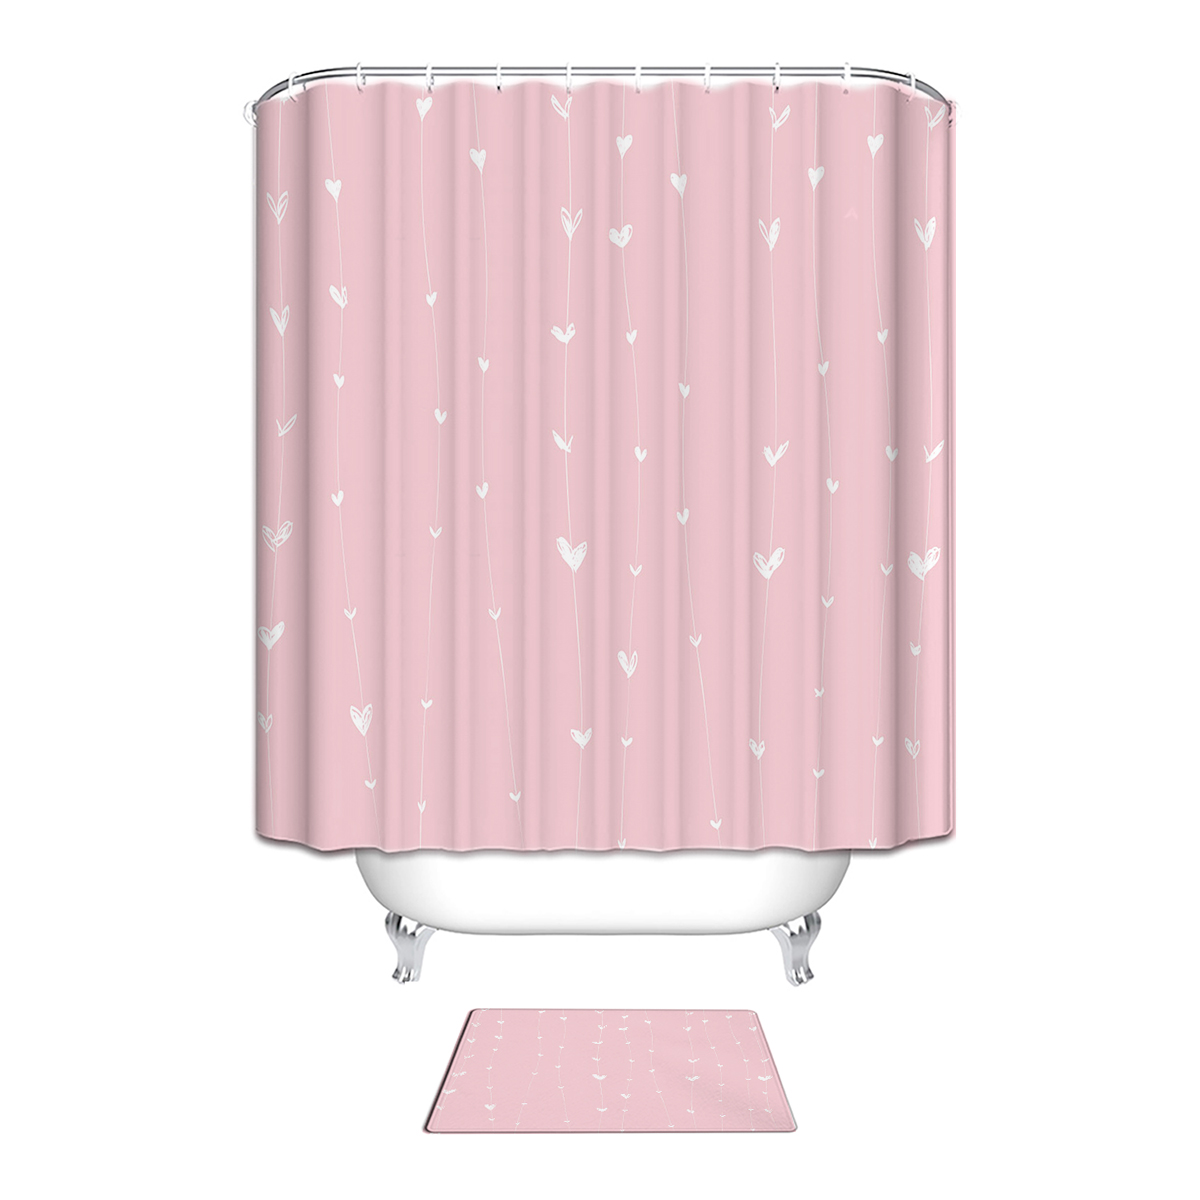 Waterproof Fabric Bathroom Shower Curtains Set Shower